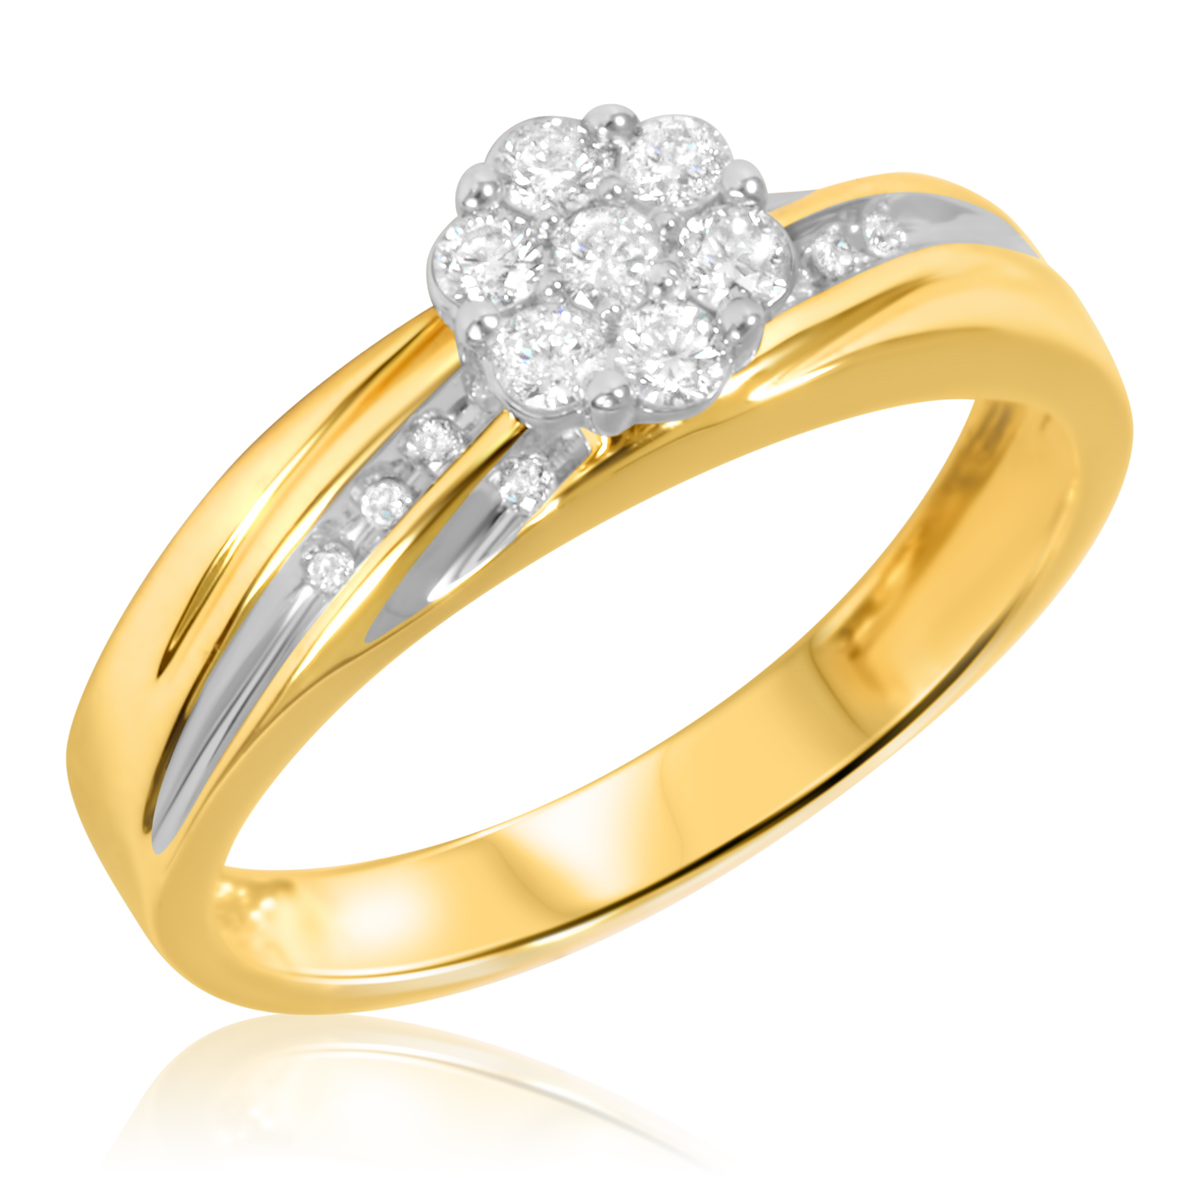 ladies rings 1/4 carat t.w. diamond ladiesu0027 engagement ring 10k yellow gold | my trio  rings btbdgks